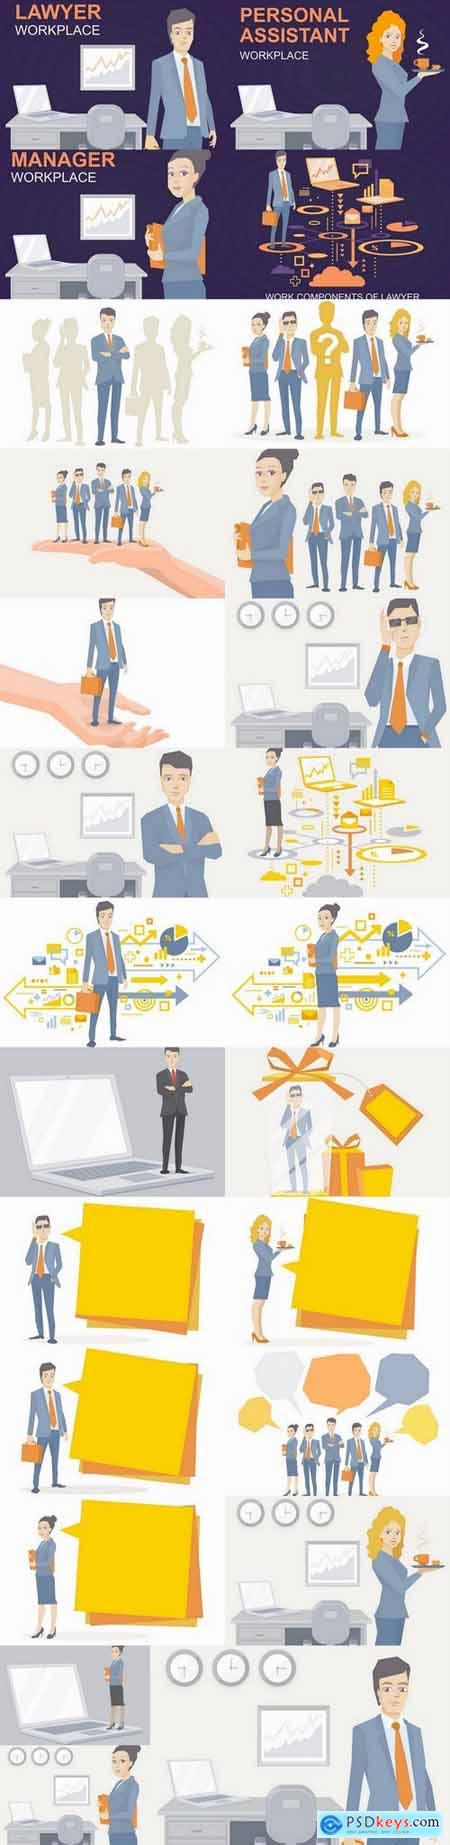 Business people vector image 25 Eps